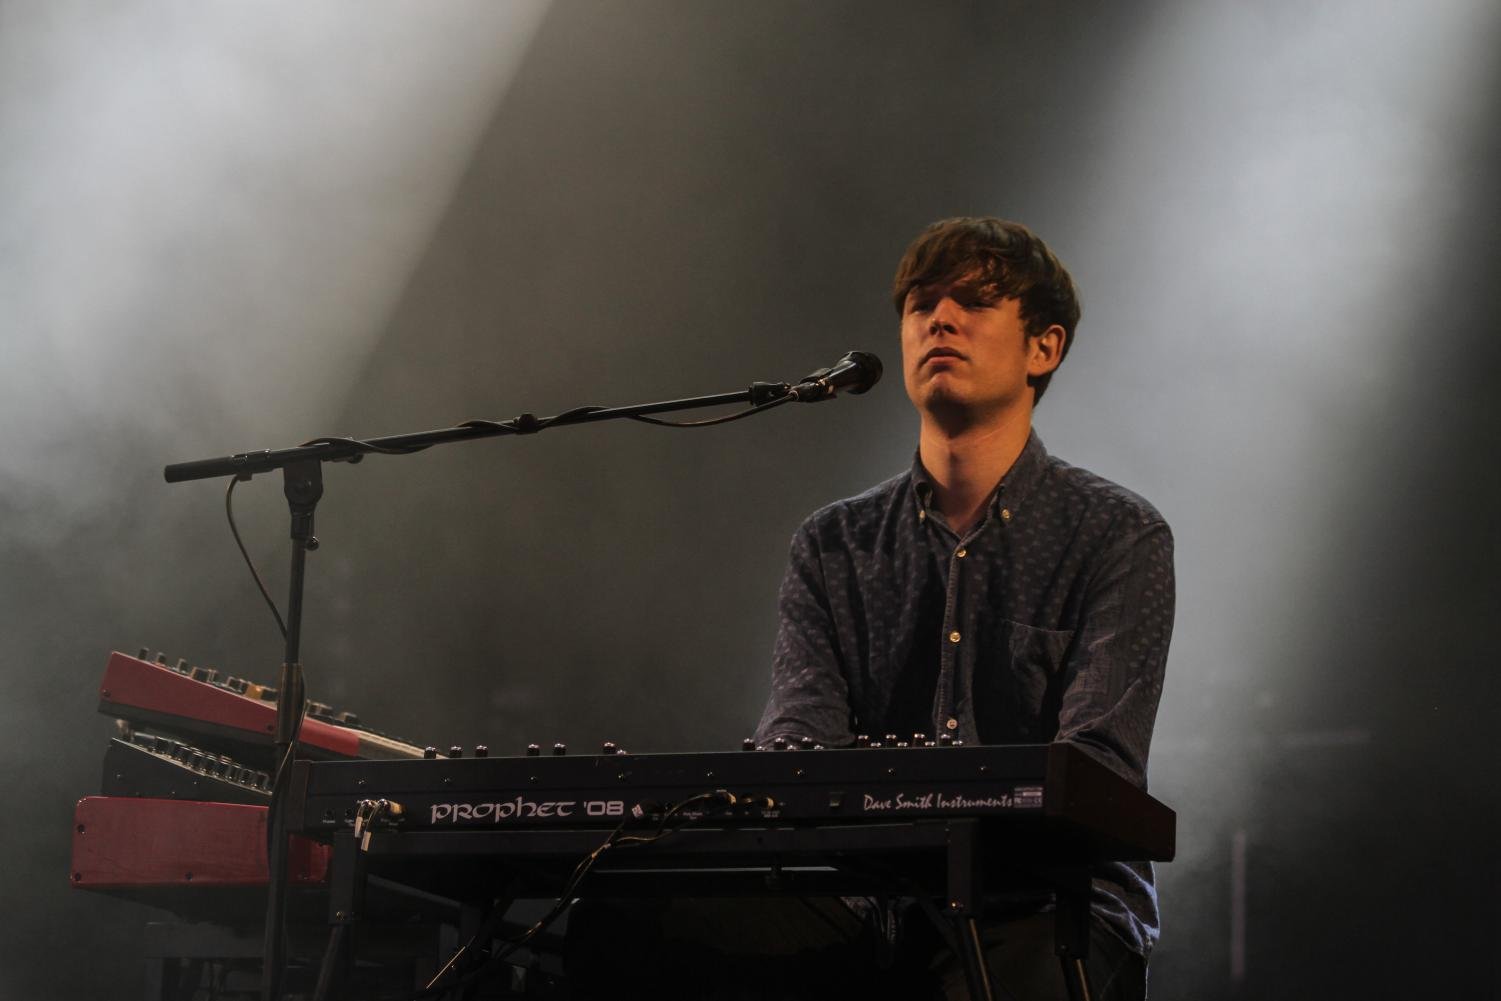 James Blake performs at the Melt! Festival in 2013. His new album,